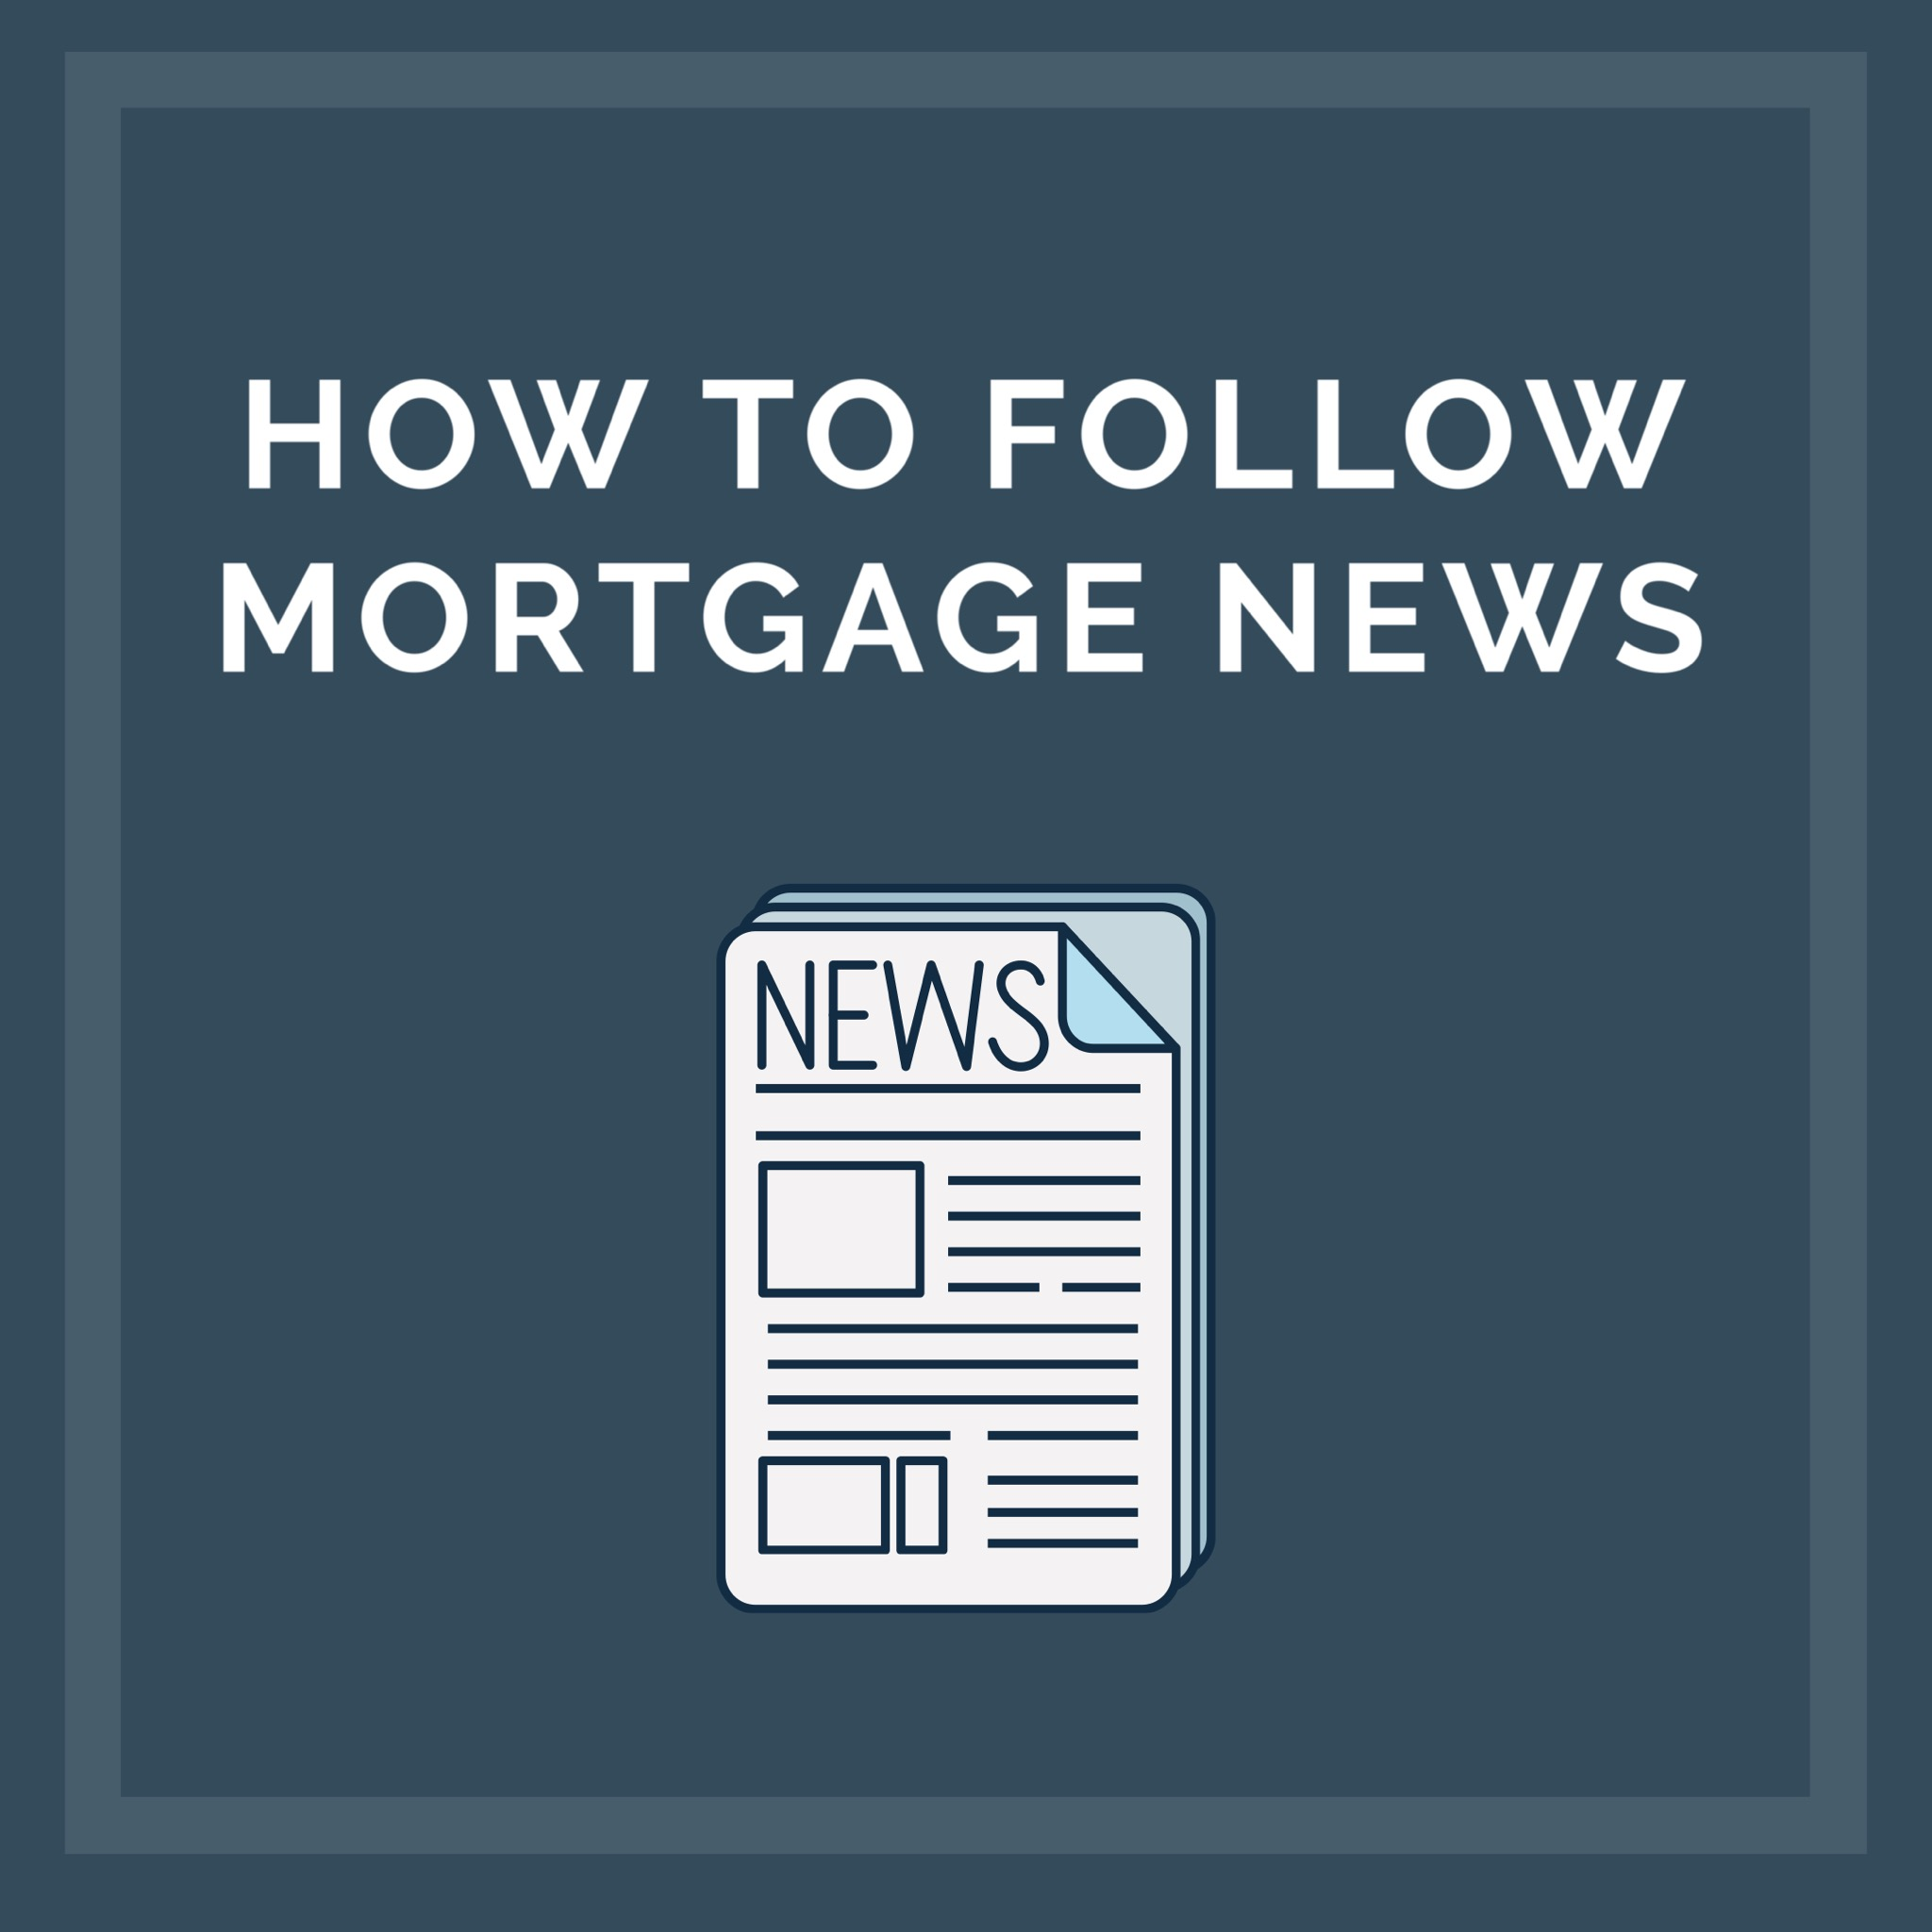 How To Follow Mortgage News